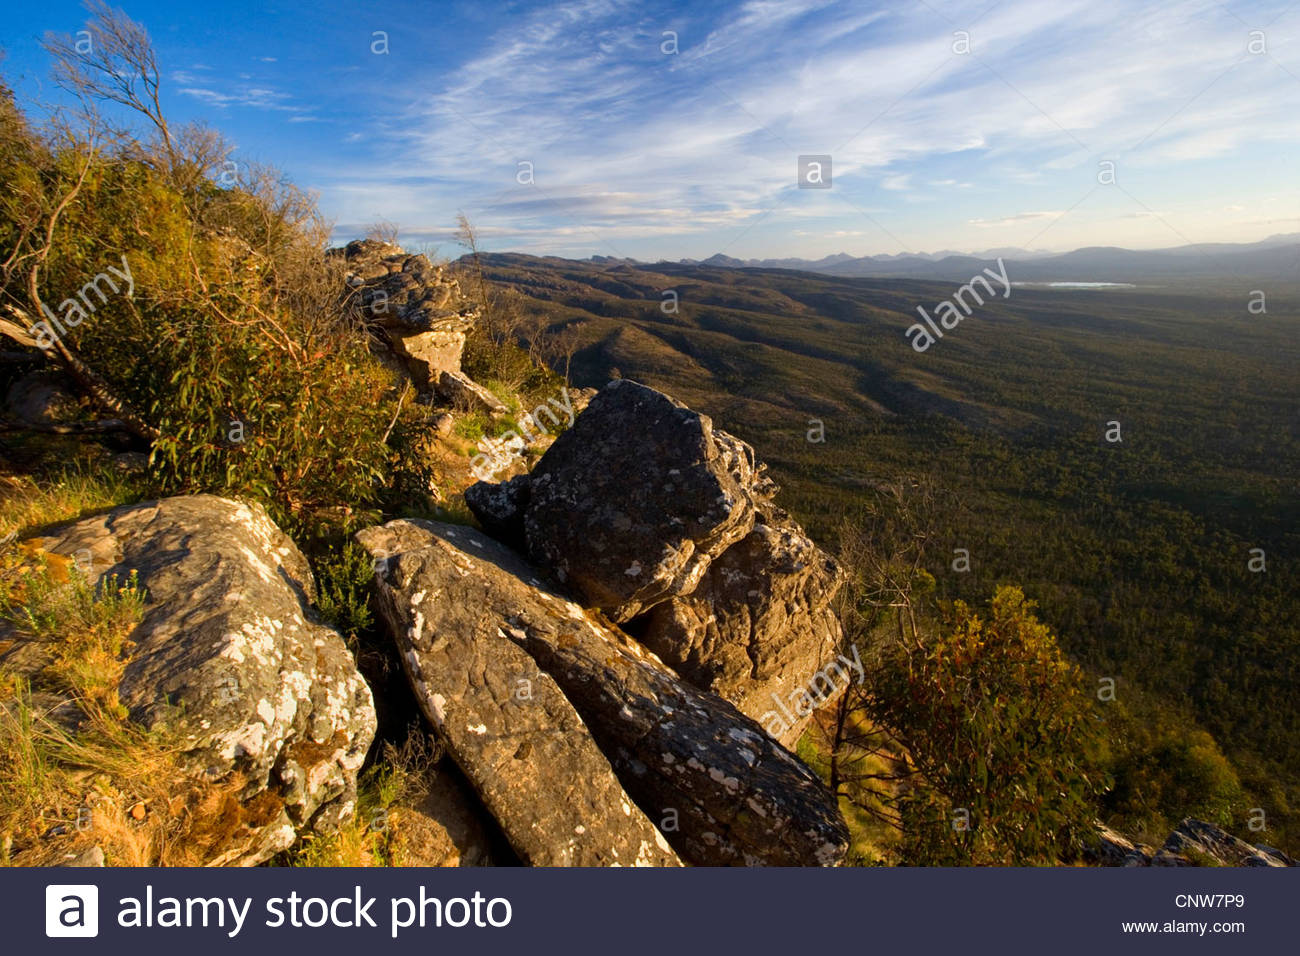 Grampian Mountains, view from Reeds Lookout towards forest-clad Victoria Valley, Australia, Victoria, Grampians - Stock Image